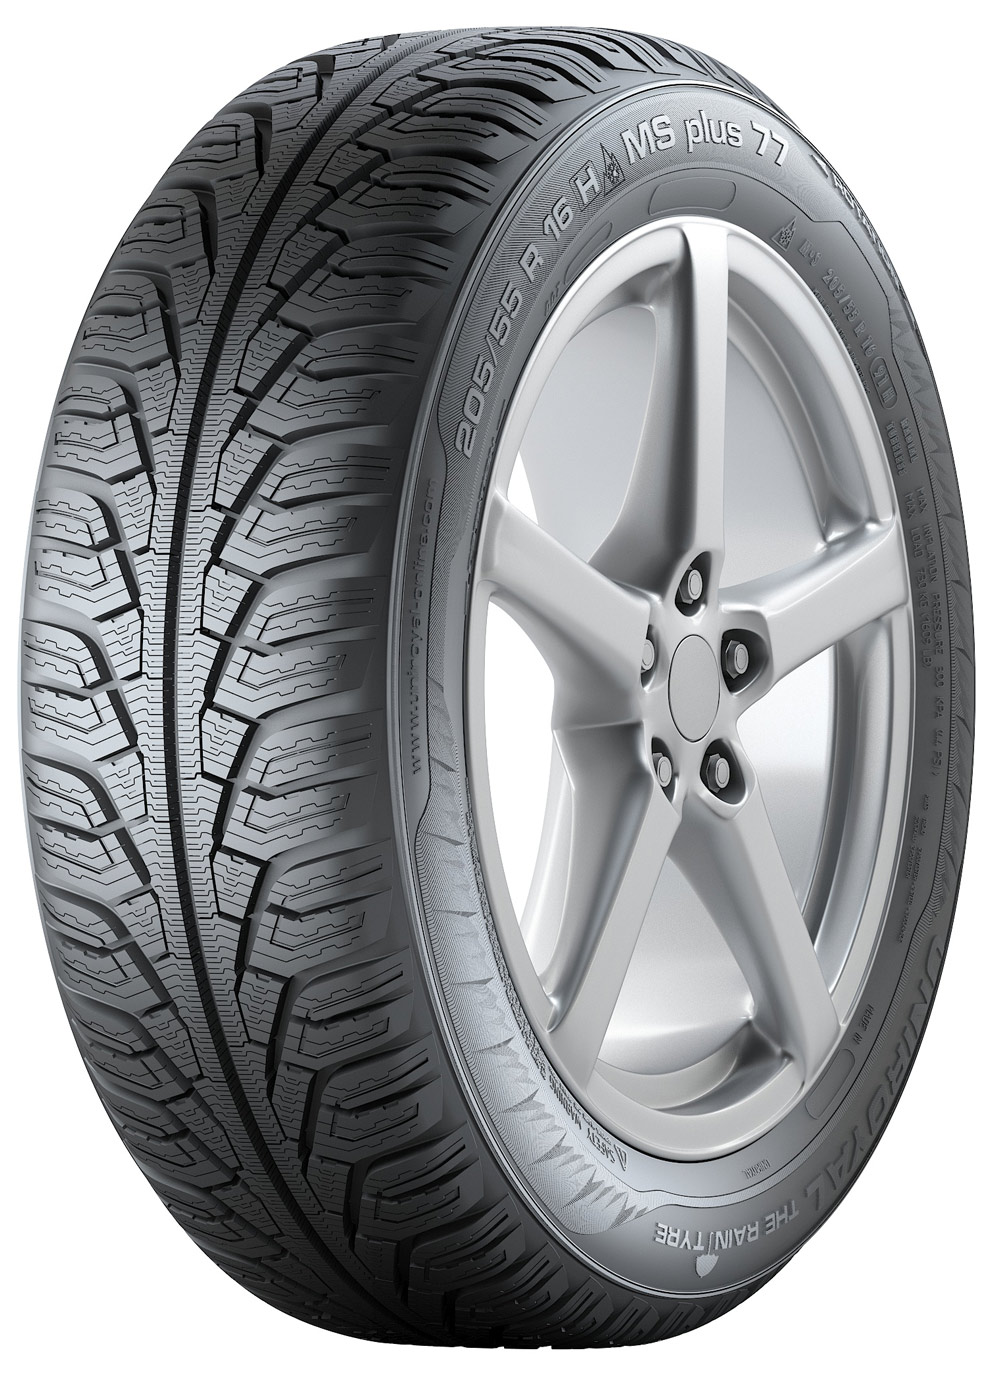 UNIROYAL MS PLUS 77 155/70 R 13